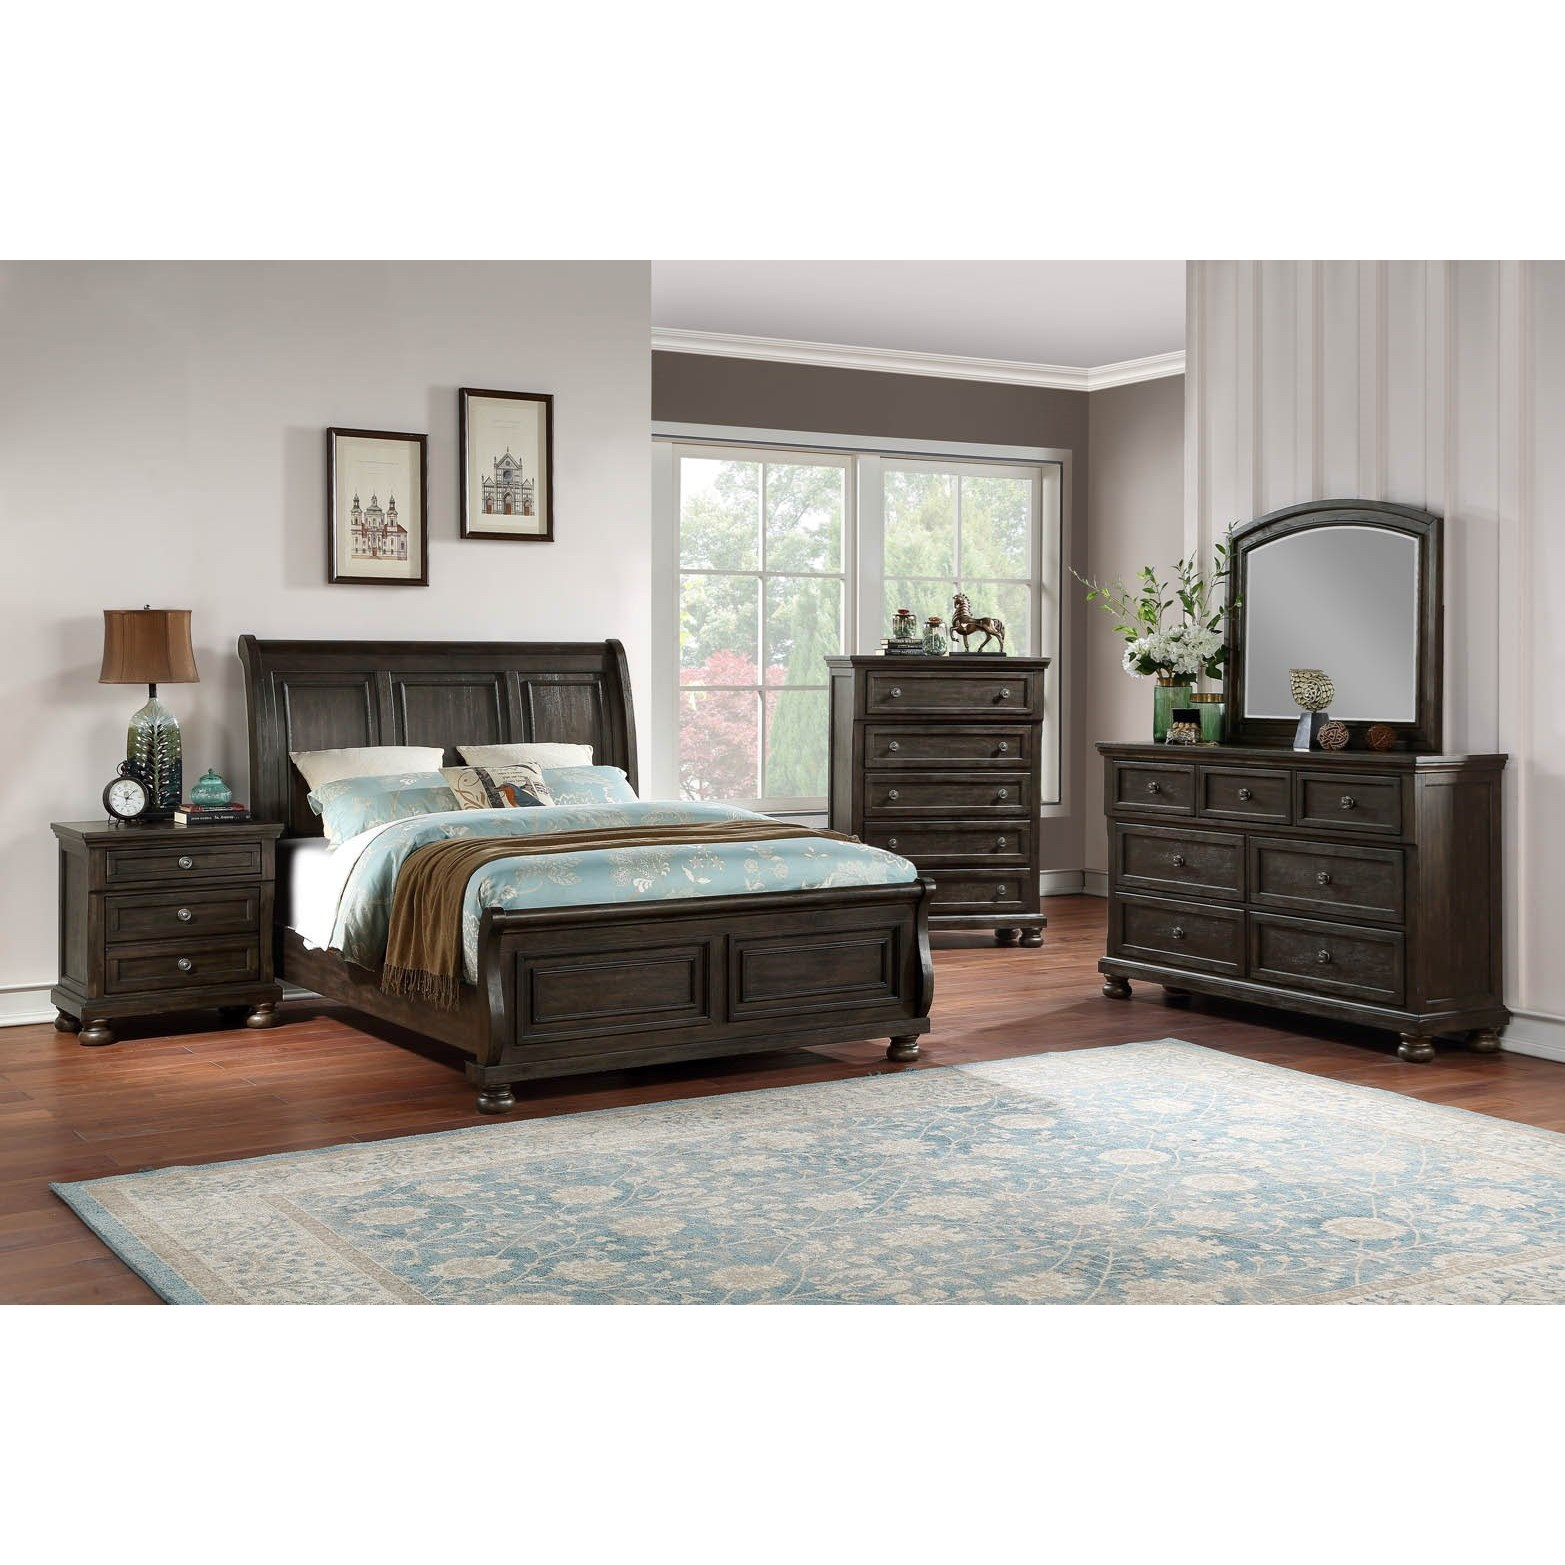 B02255 6 Piece King Bedroom by Avalon Furniture at Household Furniture